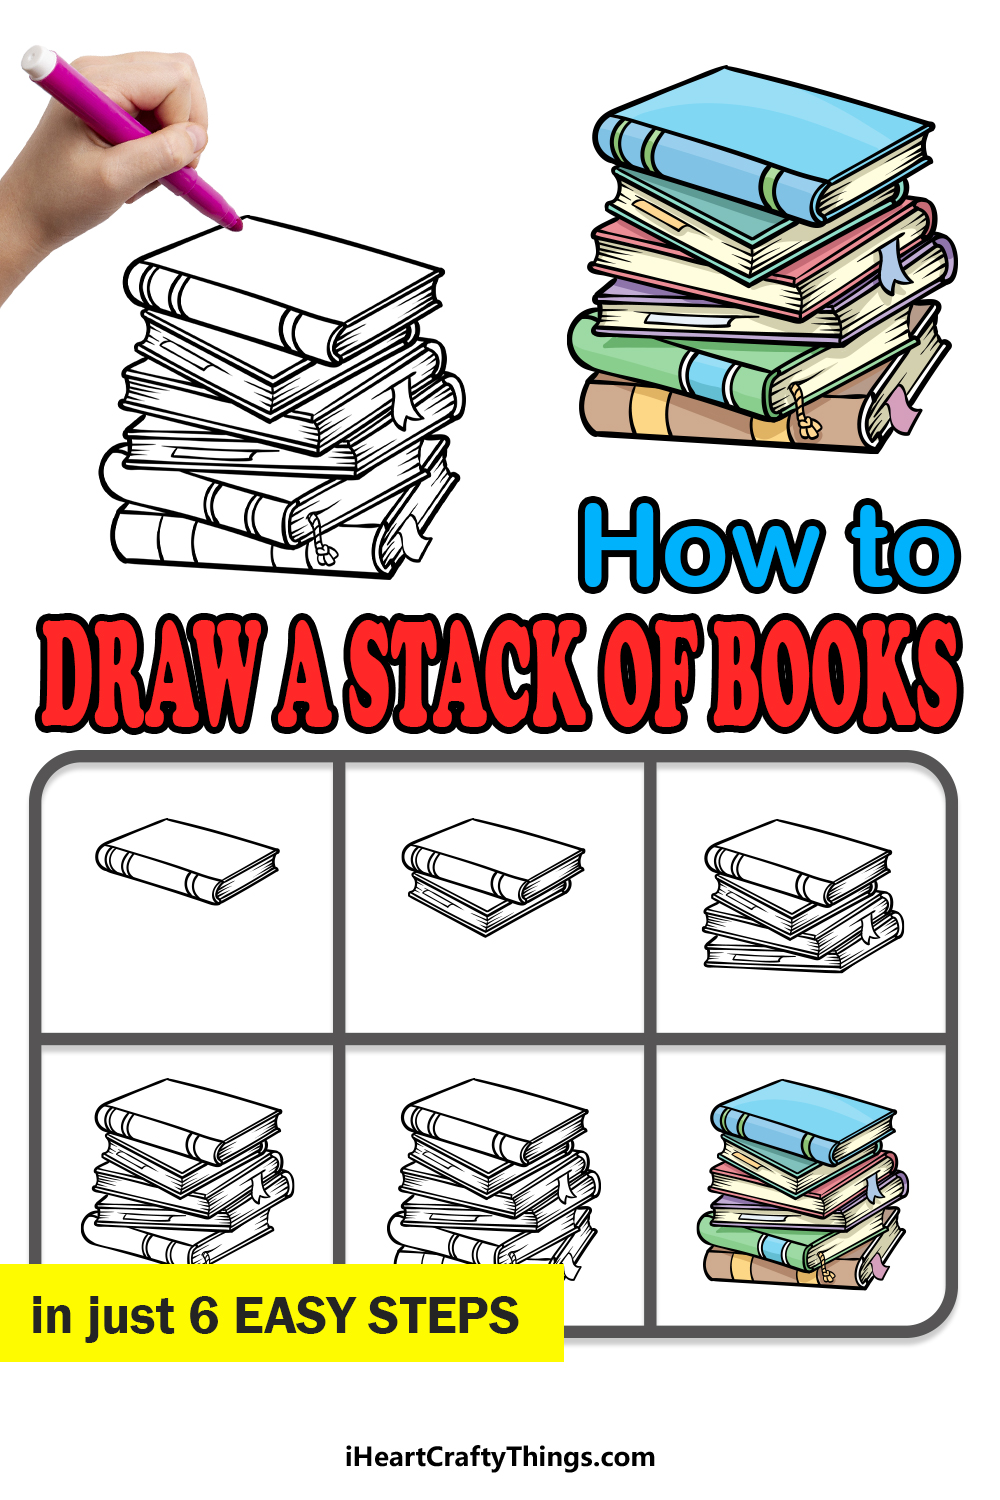 how to draw a stack of books in 6 easy steps